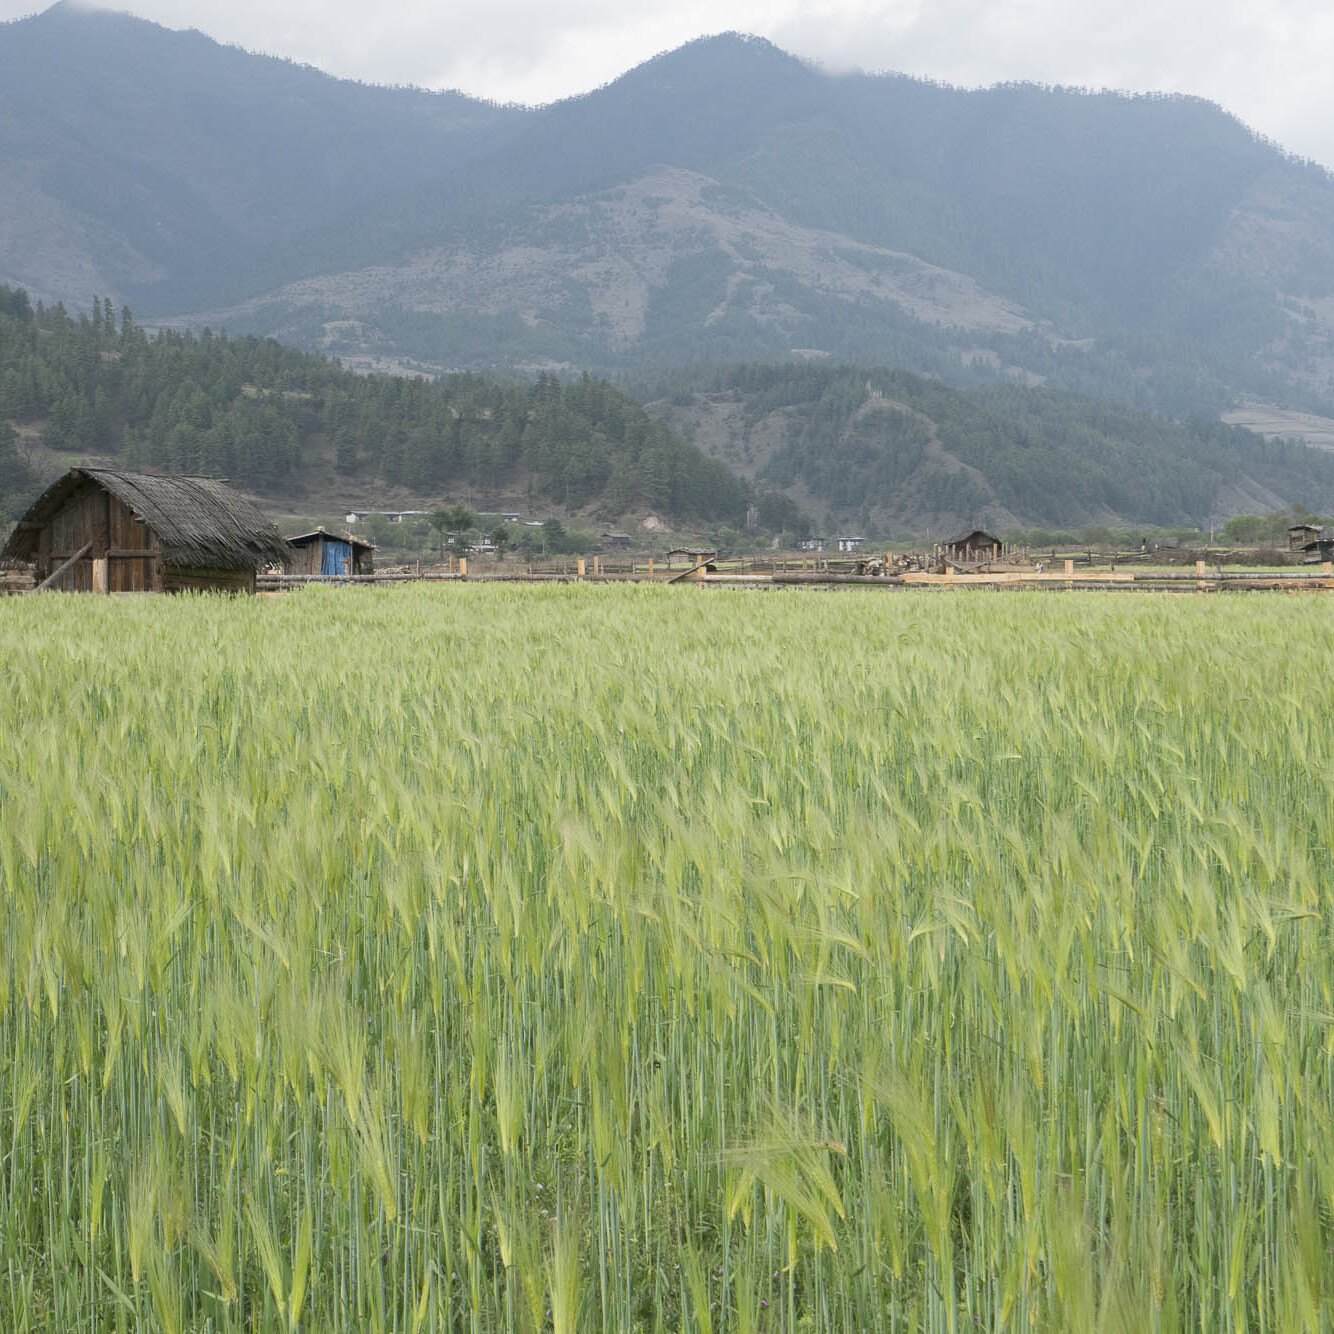 Agricultural fields in rural Bhutan